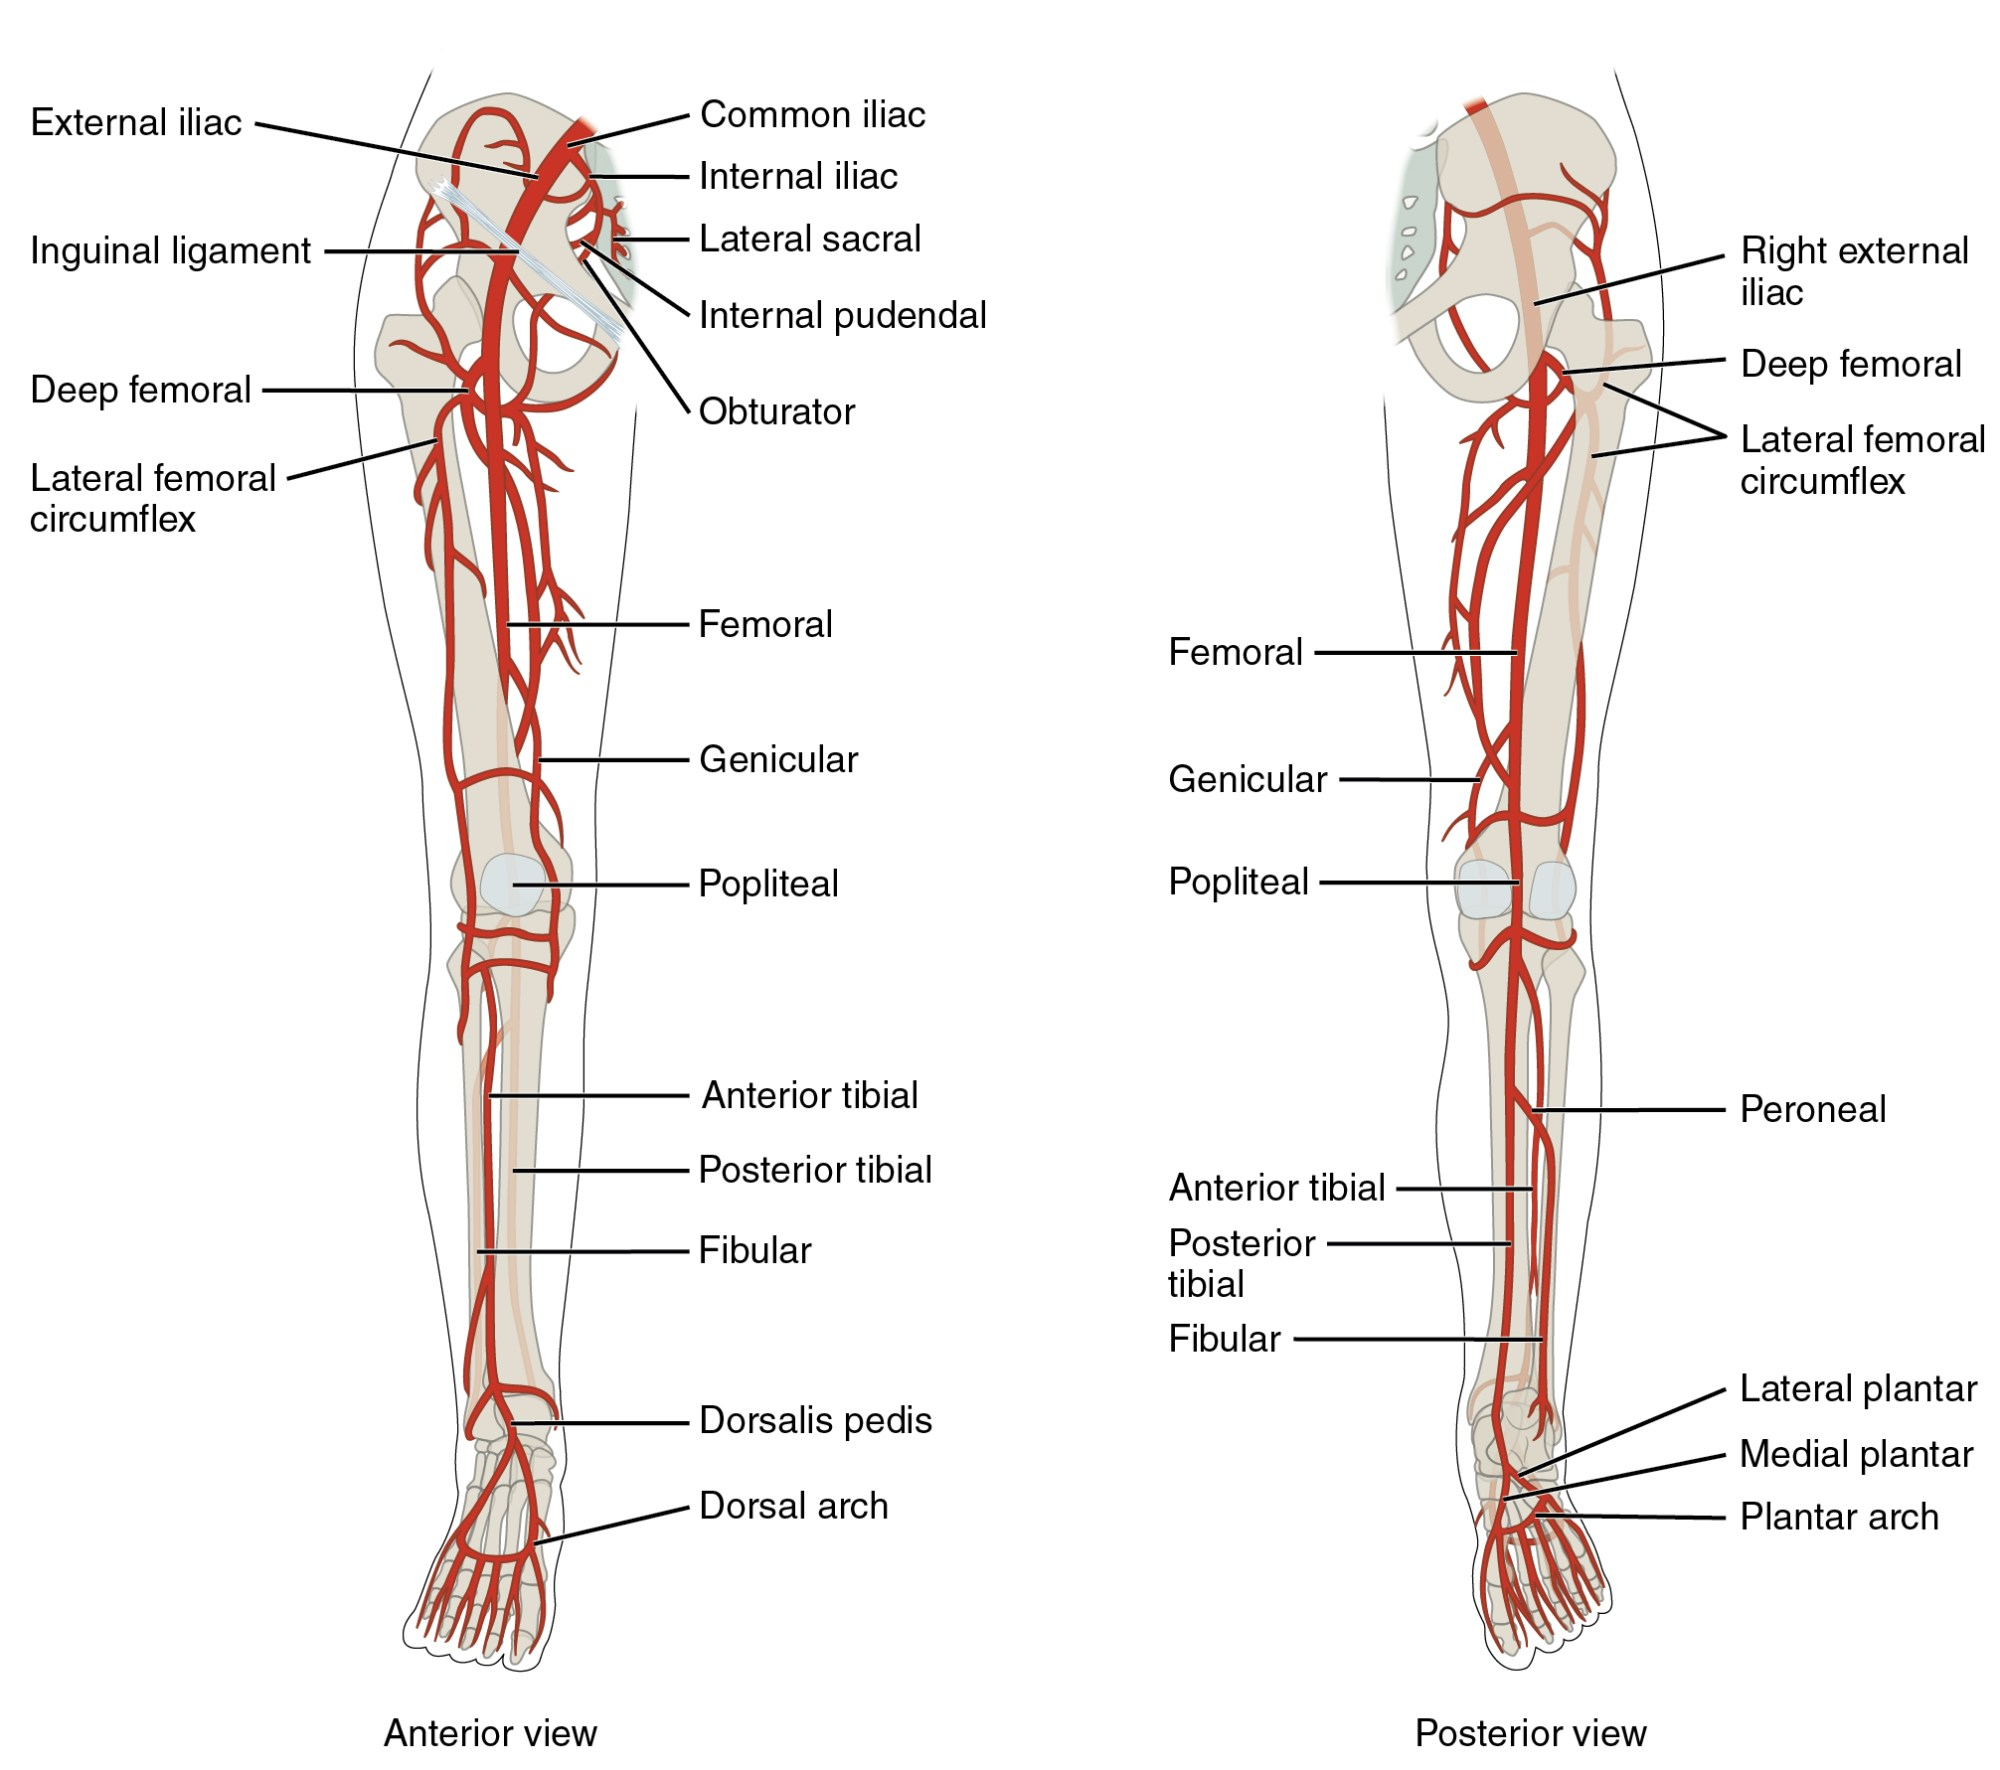 hight resolution of the left panel shows the anterior view of arteries in the legs and the right figure 12